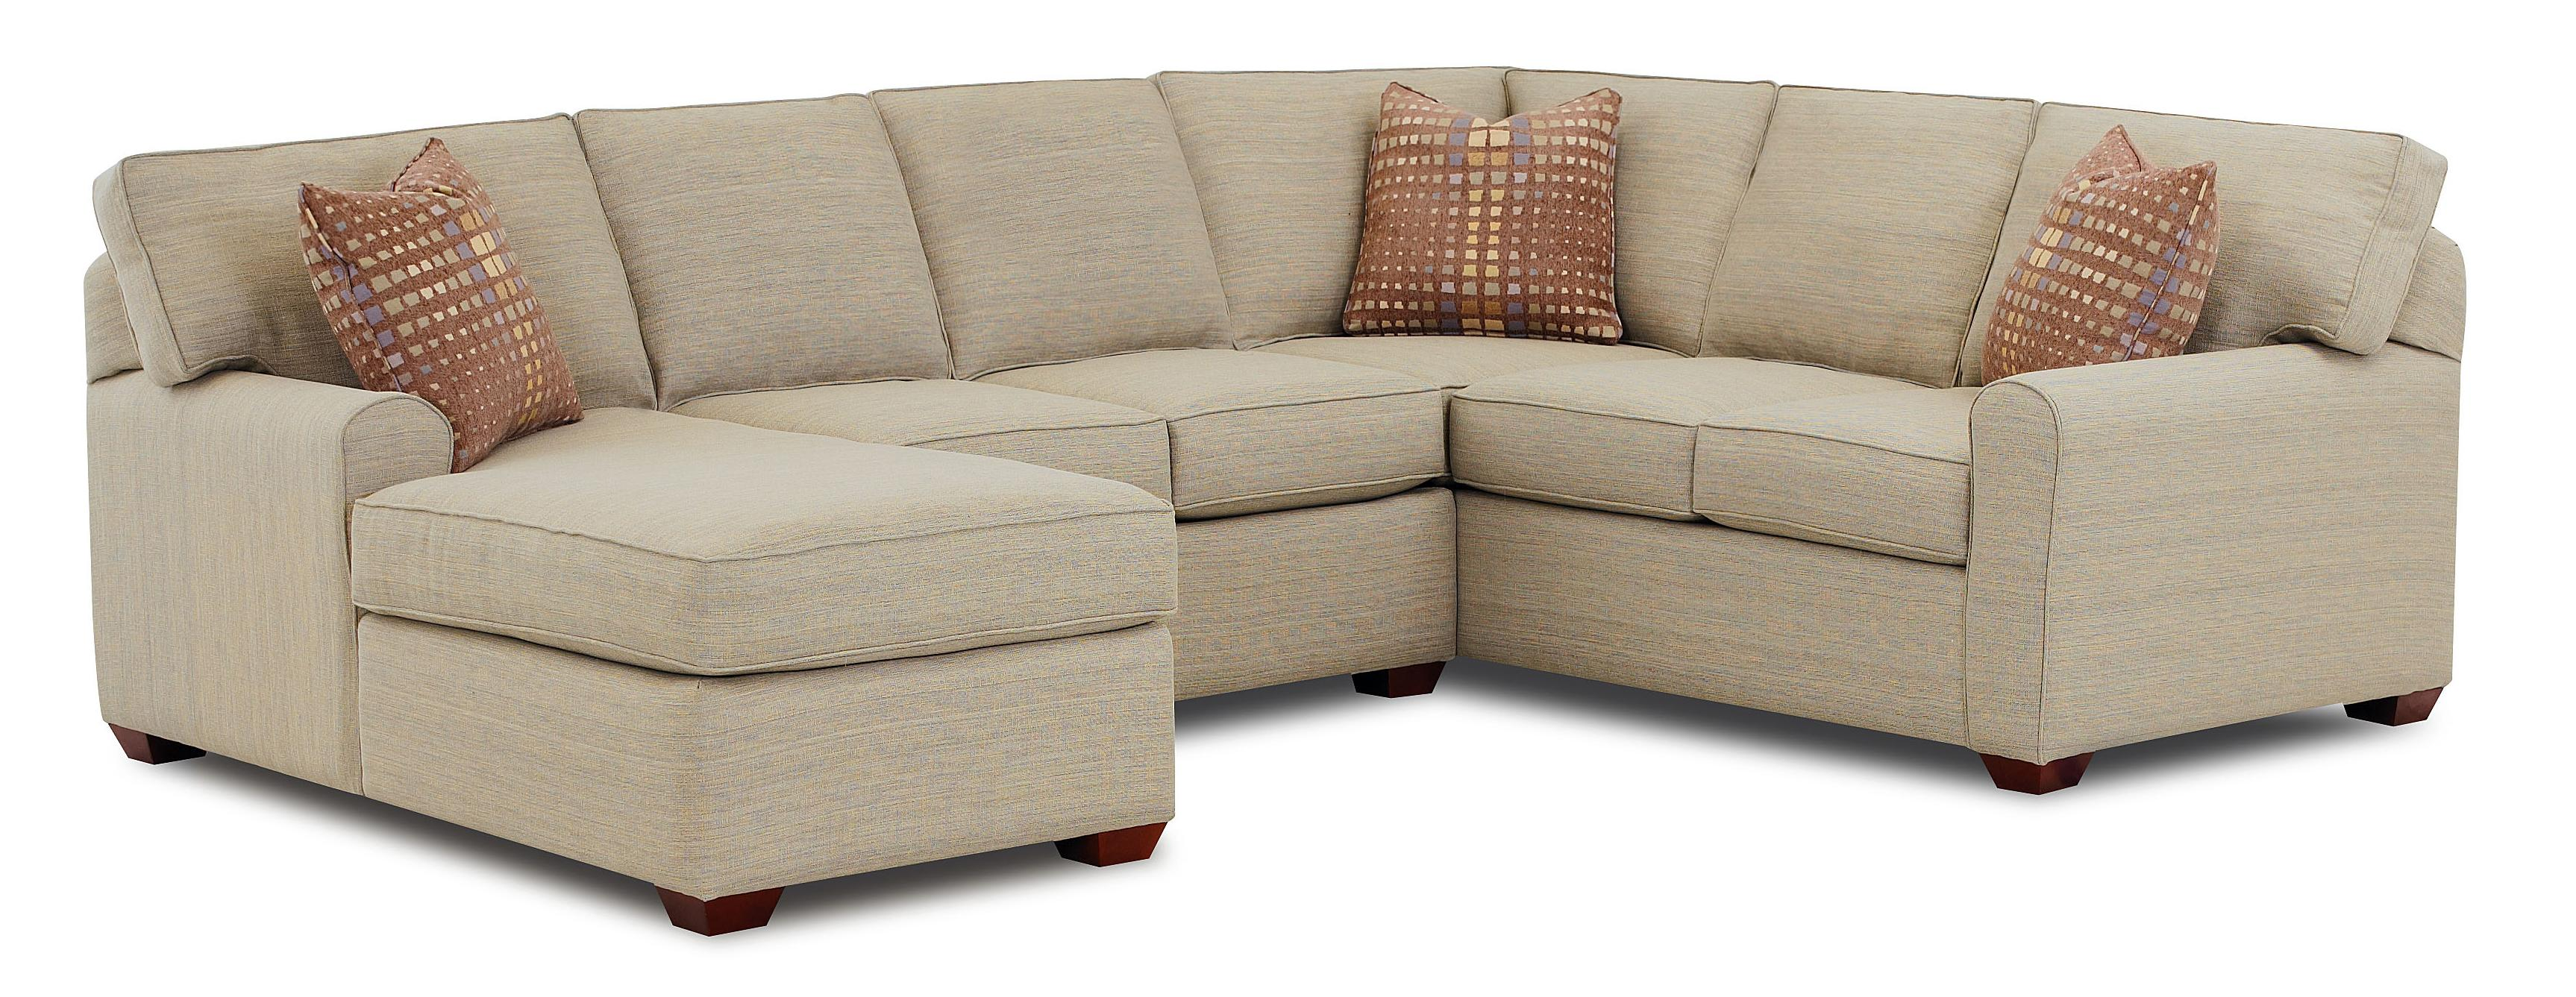 Sofa With Chaise Lounge Sectional Sofa With Left Facing Chaise Lounge By Klaussner